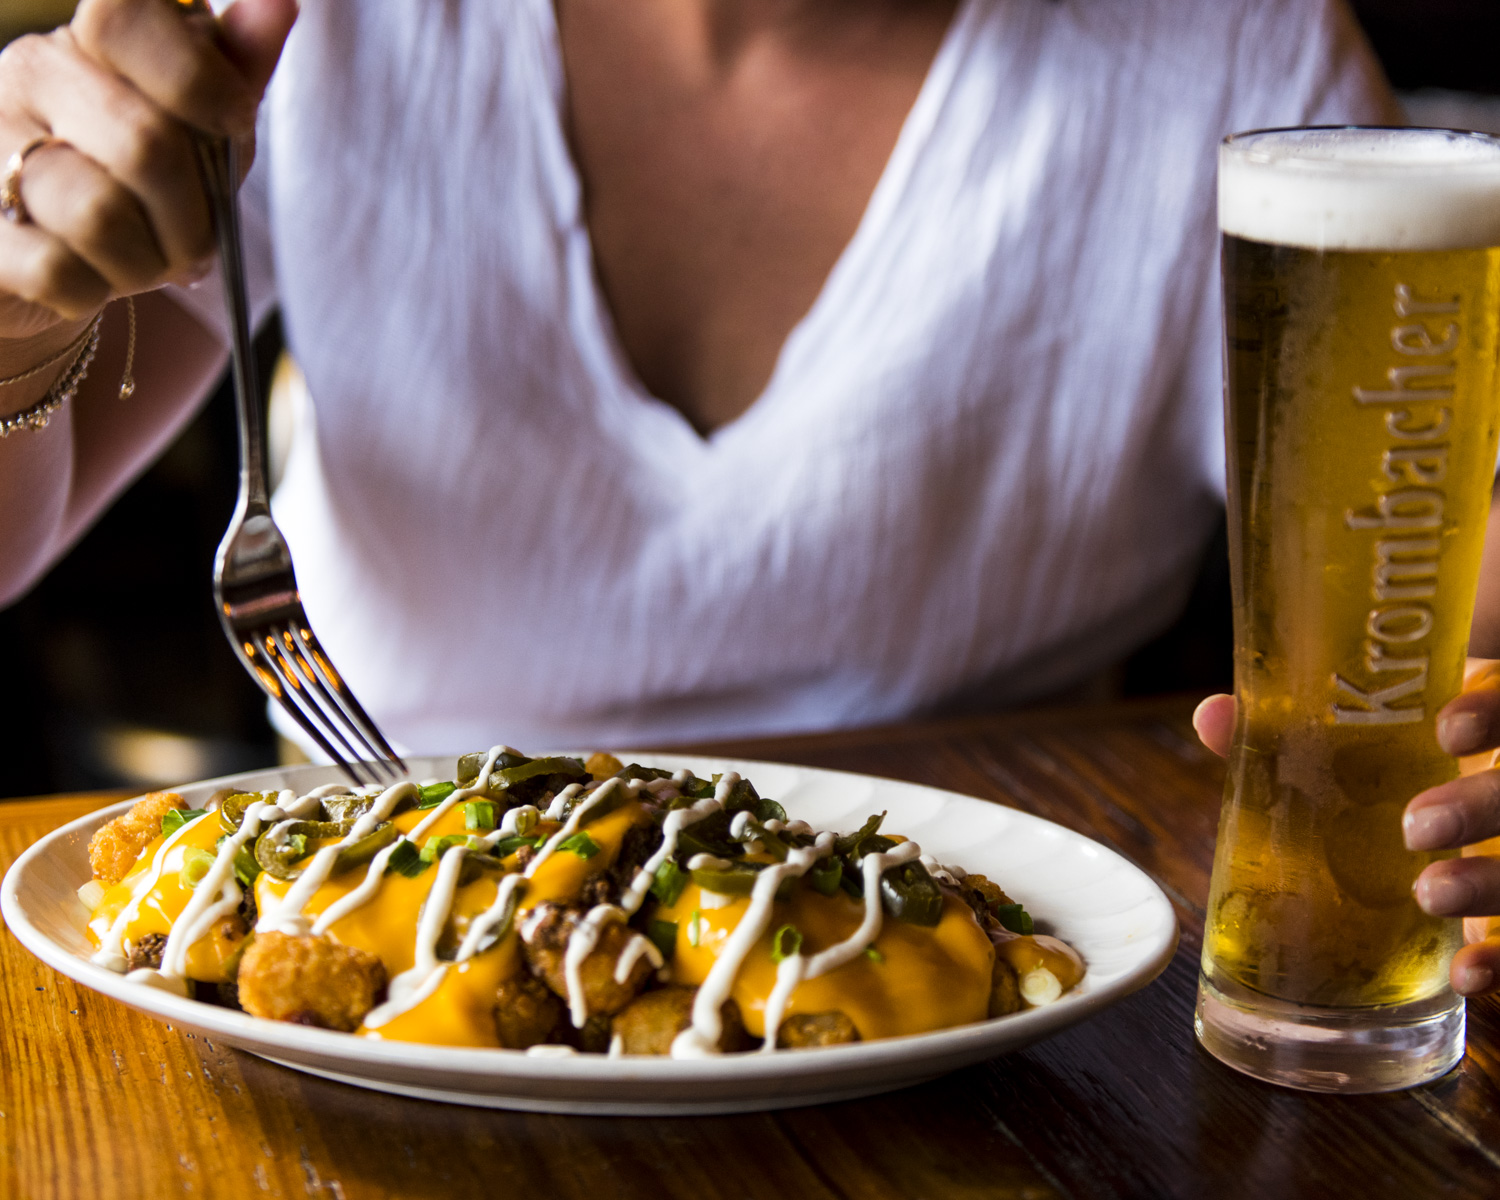 In The Kitchen - Hungry? We've got your back. See what we're serving to pair perfectly with your beer.